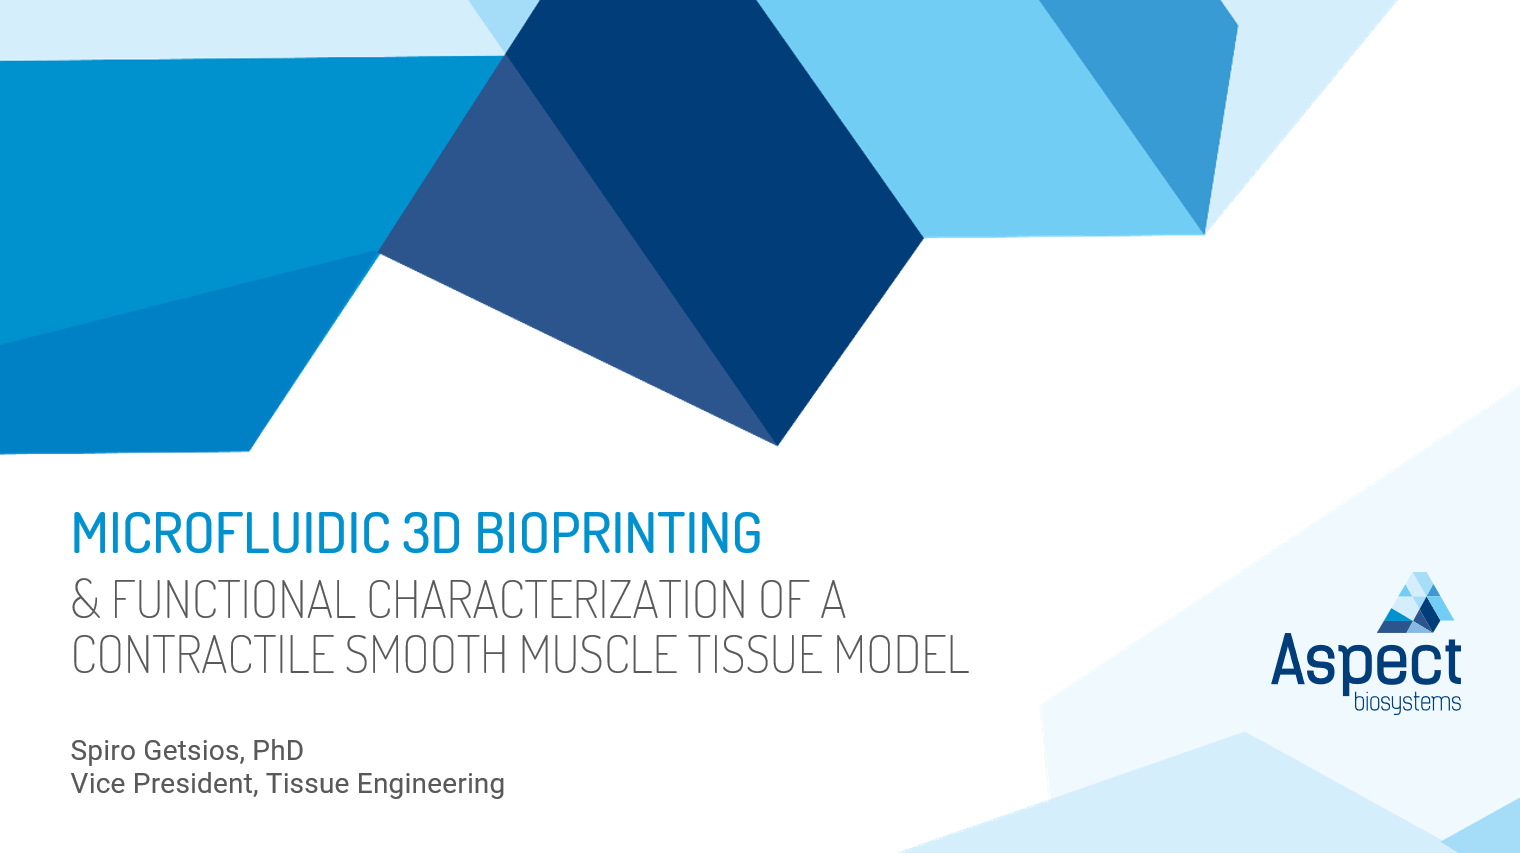 Webinar: Microfluidic 3D bioprinting & functional characterization of a contractile smooth muscle tissue model